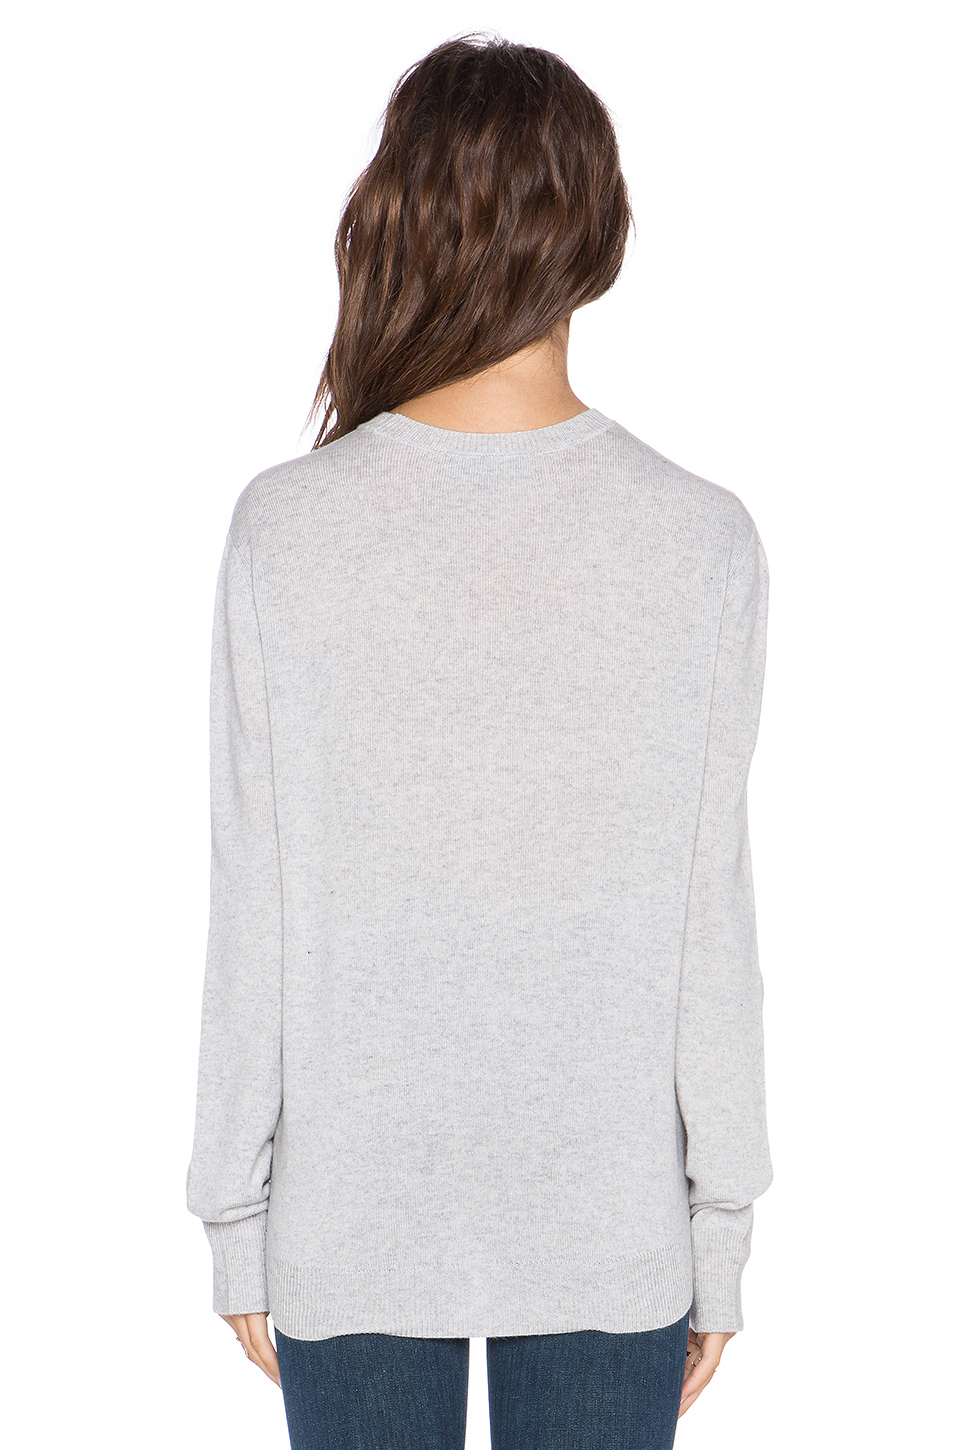 Thumbhole Sweater ($ - $1,): 30 of items - Shop Thumbhole Sweater from ALL your favorite stores & find HUGE SAVINGS up to 80% off Thumbhole Sweater, including GREAT DEALS like K Jordan Marled Thumbhole Sweater (Size S) Heather Grey Viscose,Polyester ($).